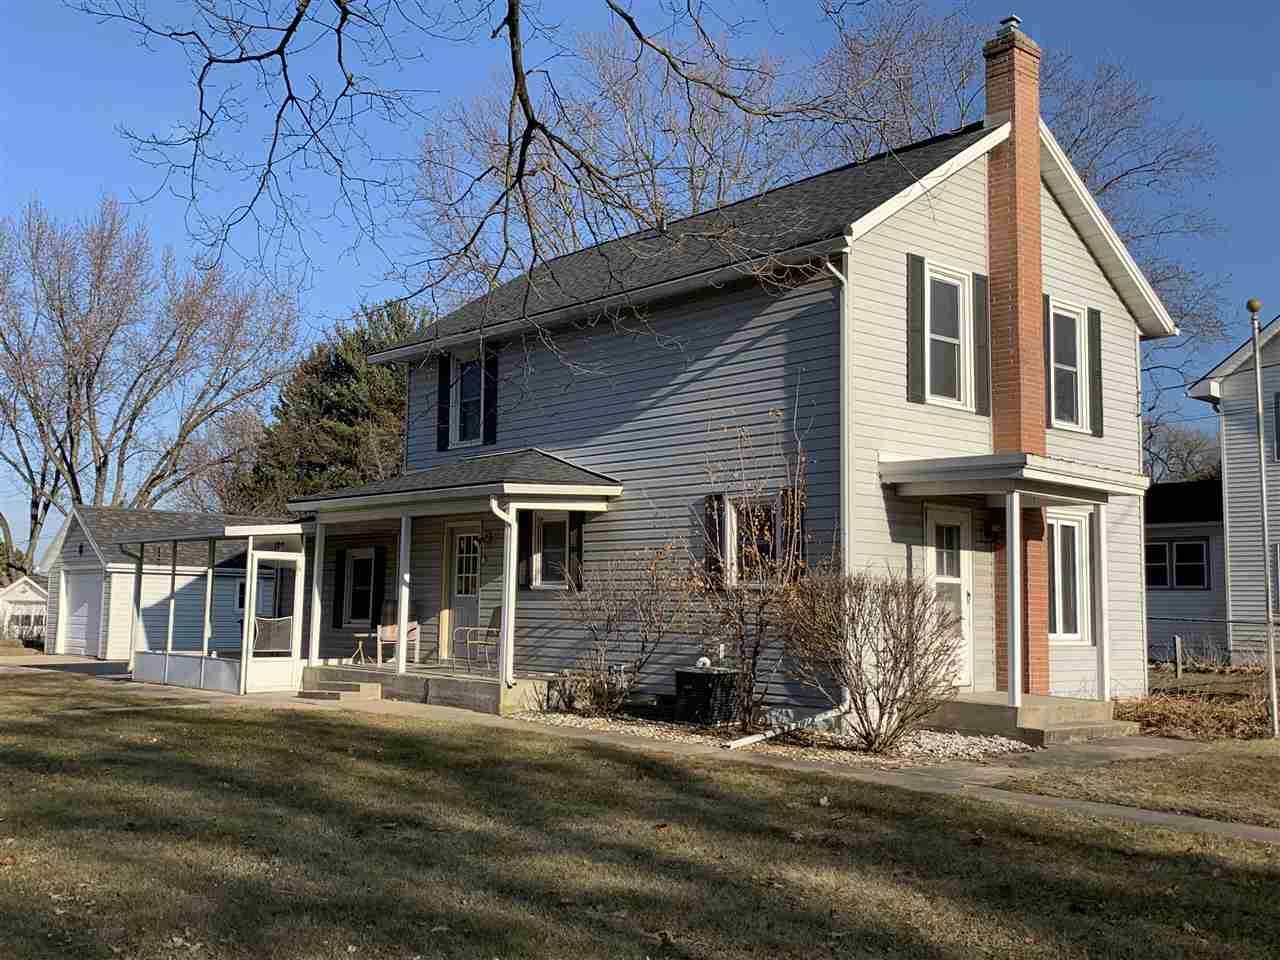 432 W Madison Ave, Milton, WI 53563 - #: 1874492